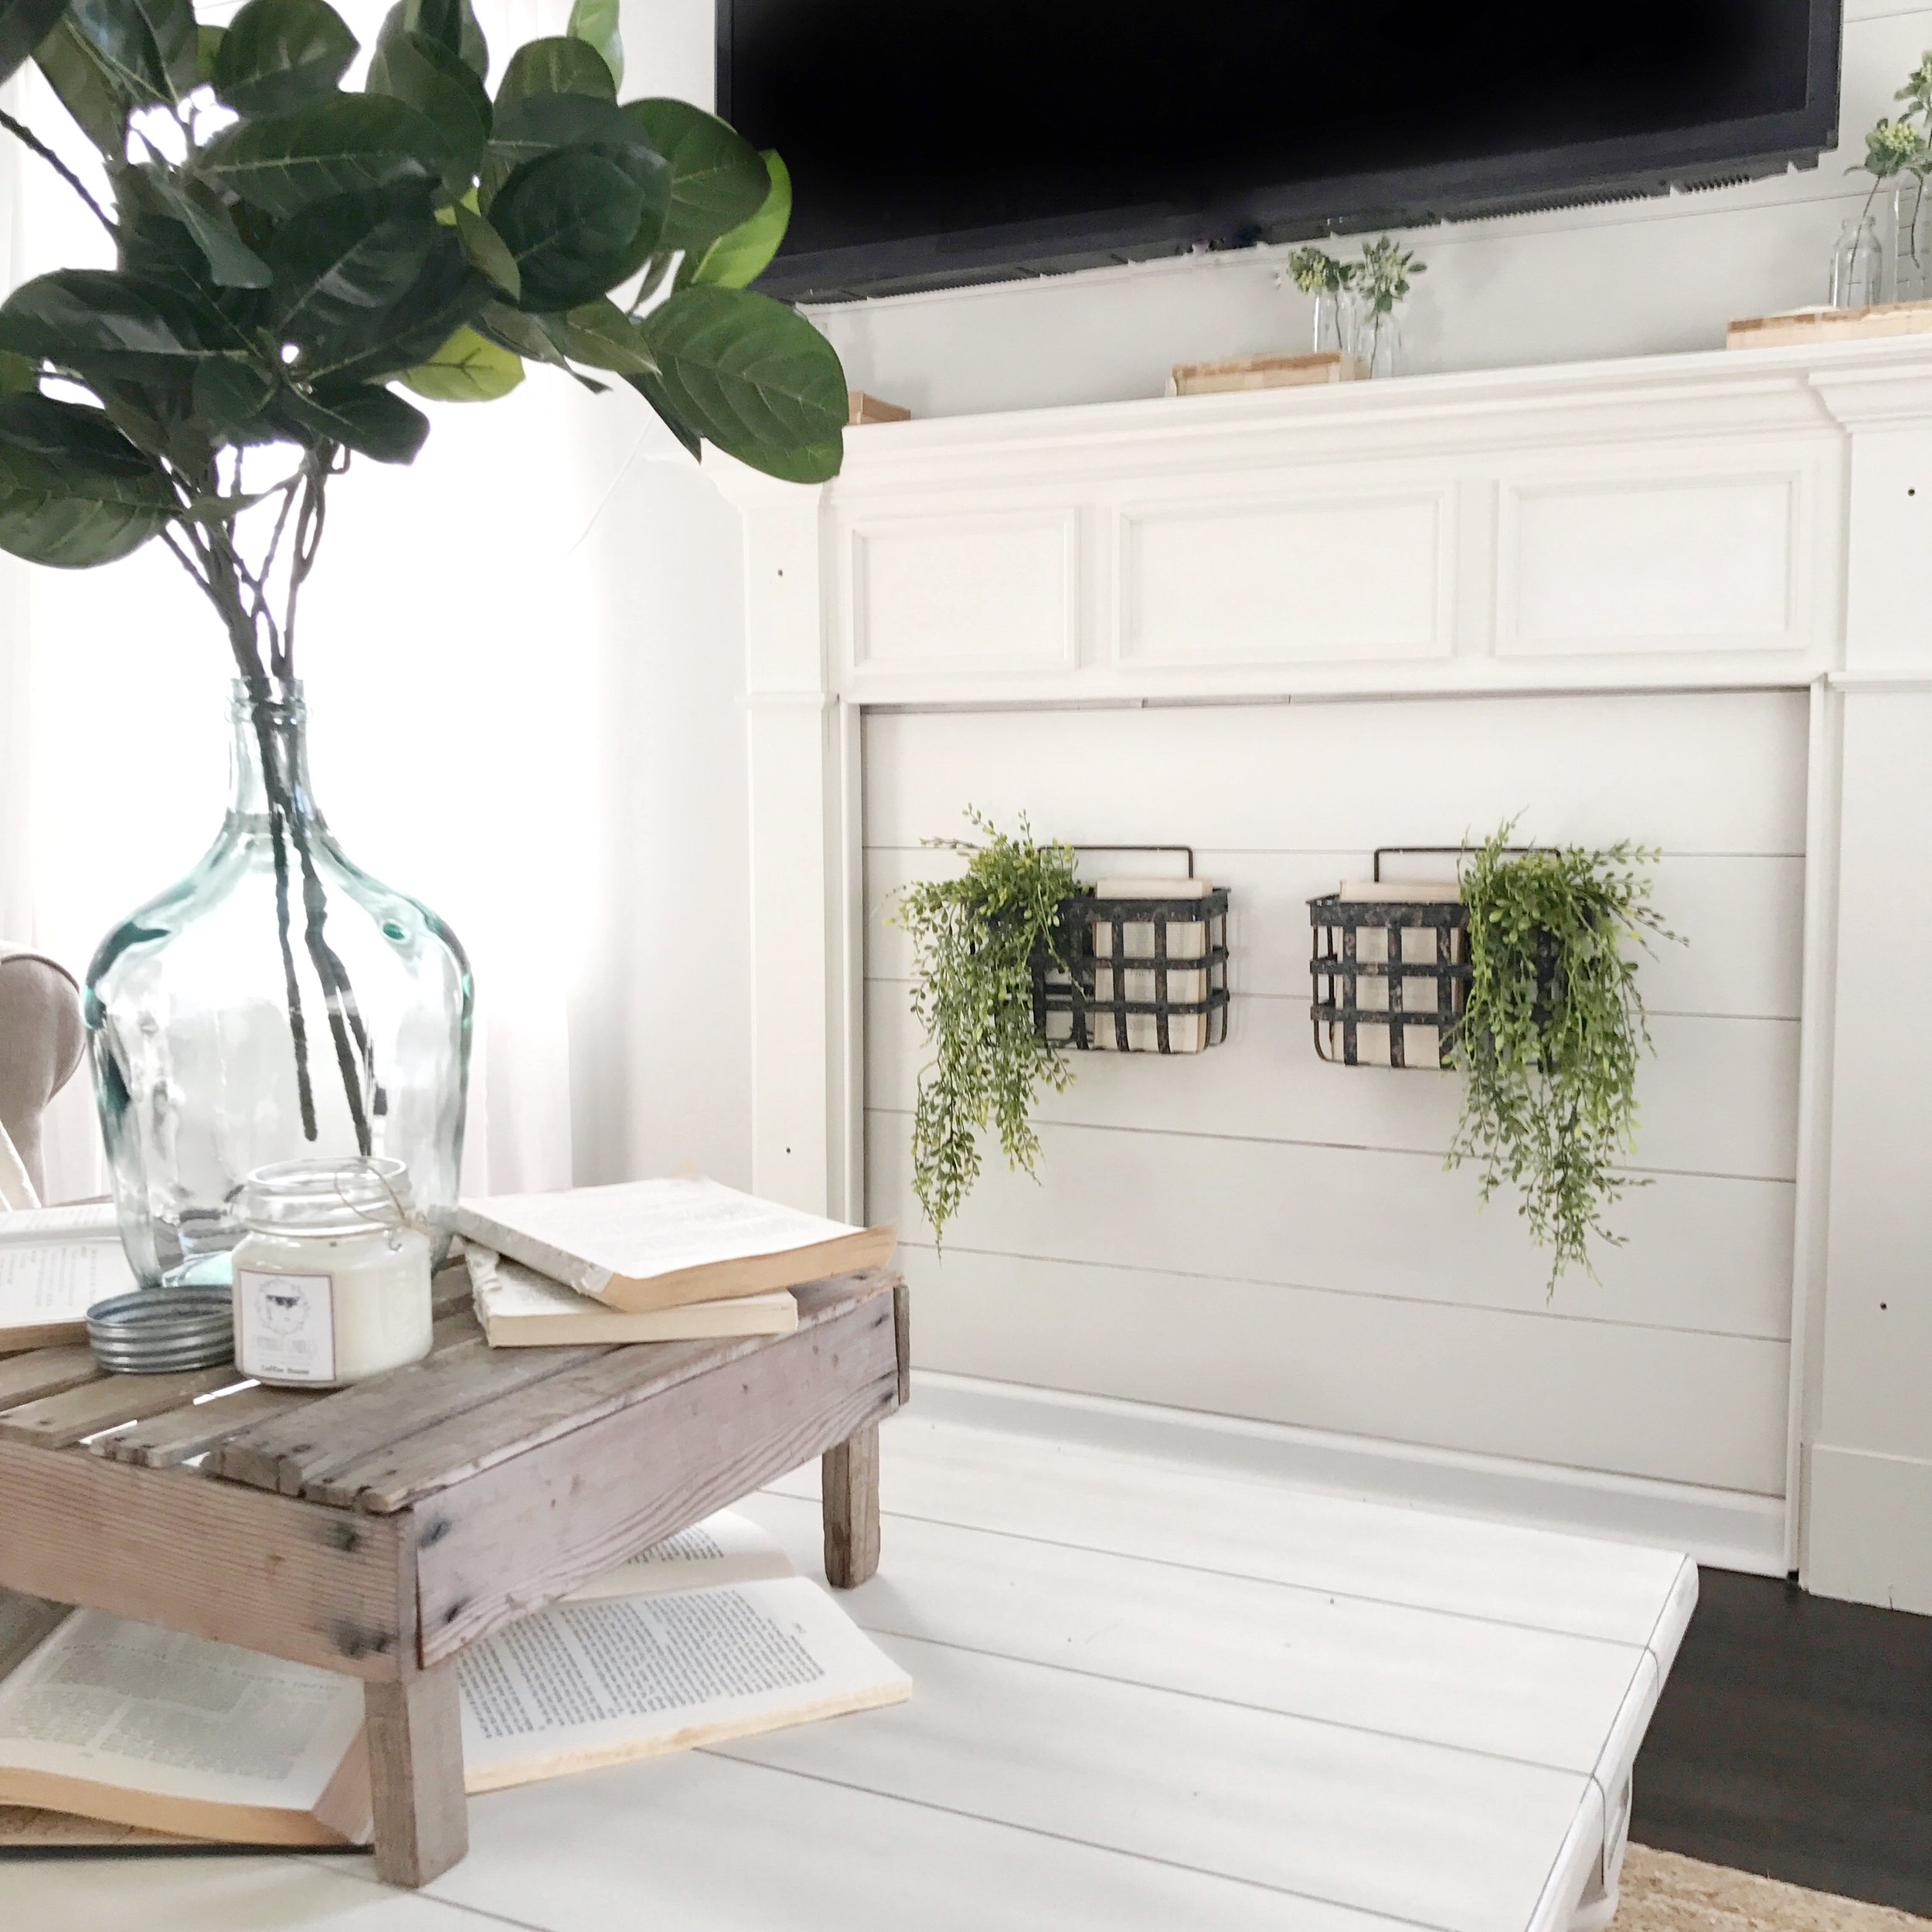 Farmhouse Style Living Room with Faux Shiplap Fireplace- Interior Design by Plum Pretty Decor and Design